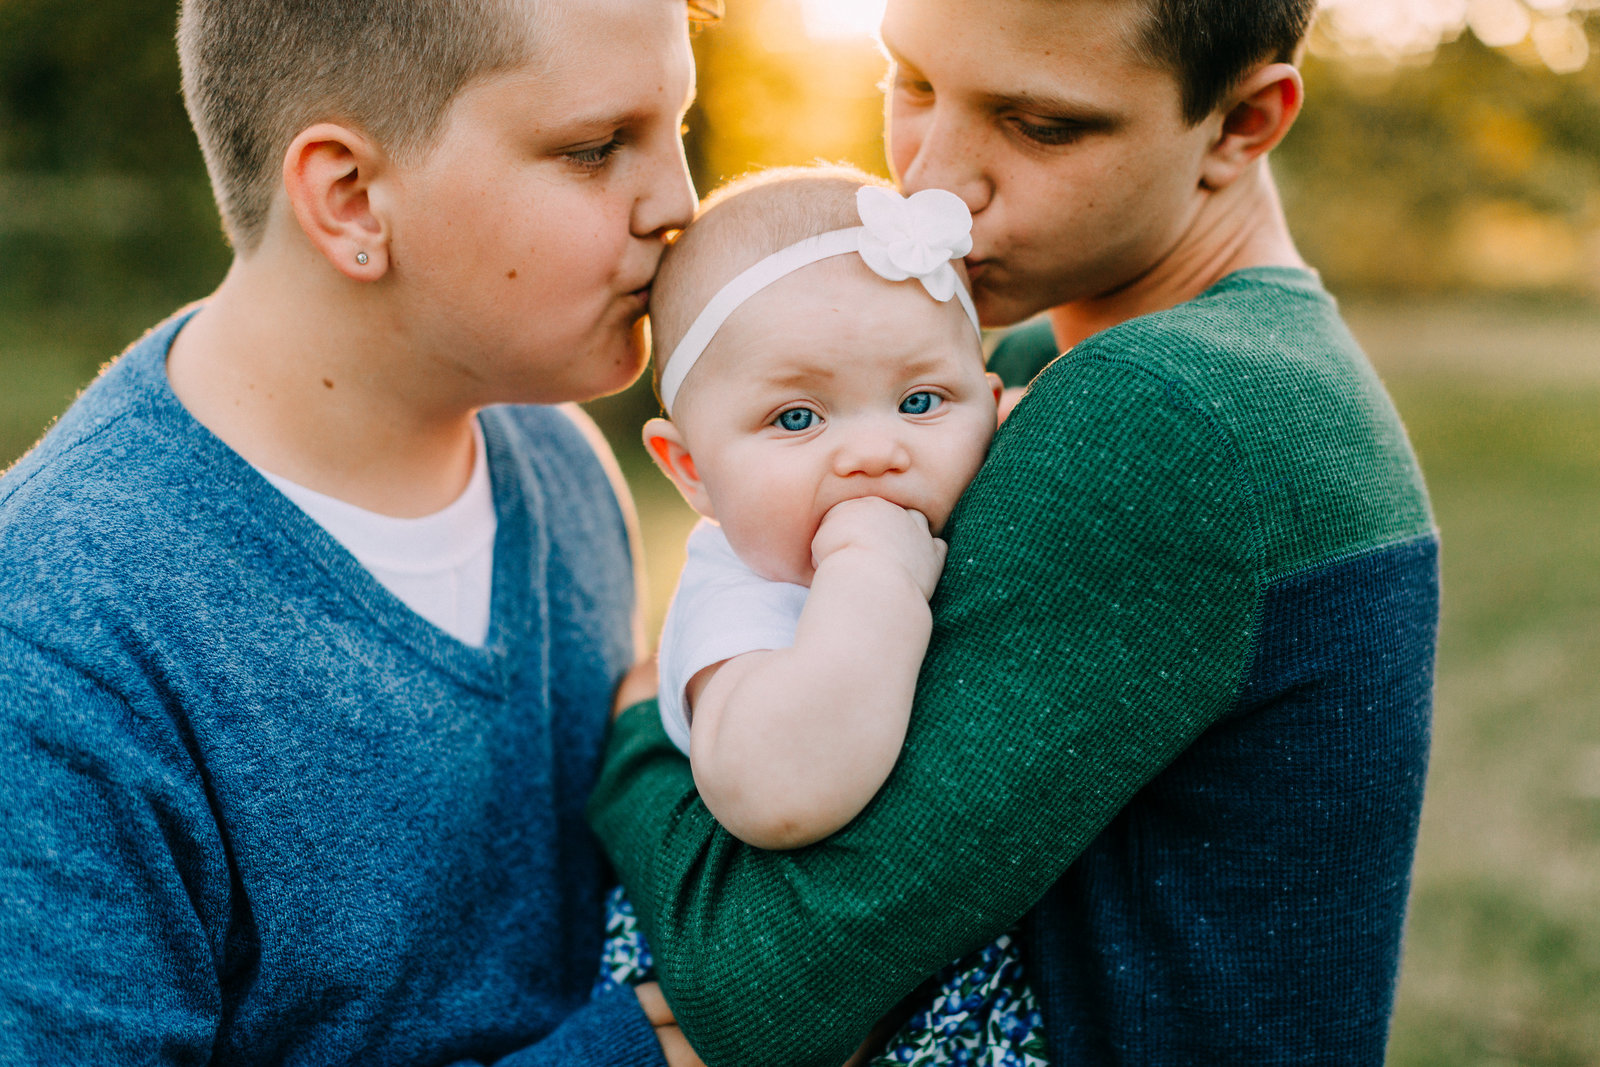 St-Louis-family-Photographer-Kelly-Laramore-Photography-158